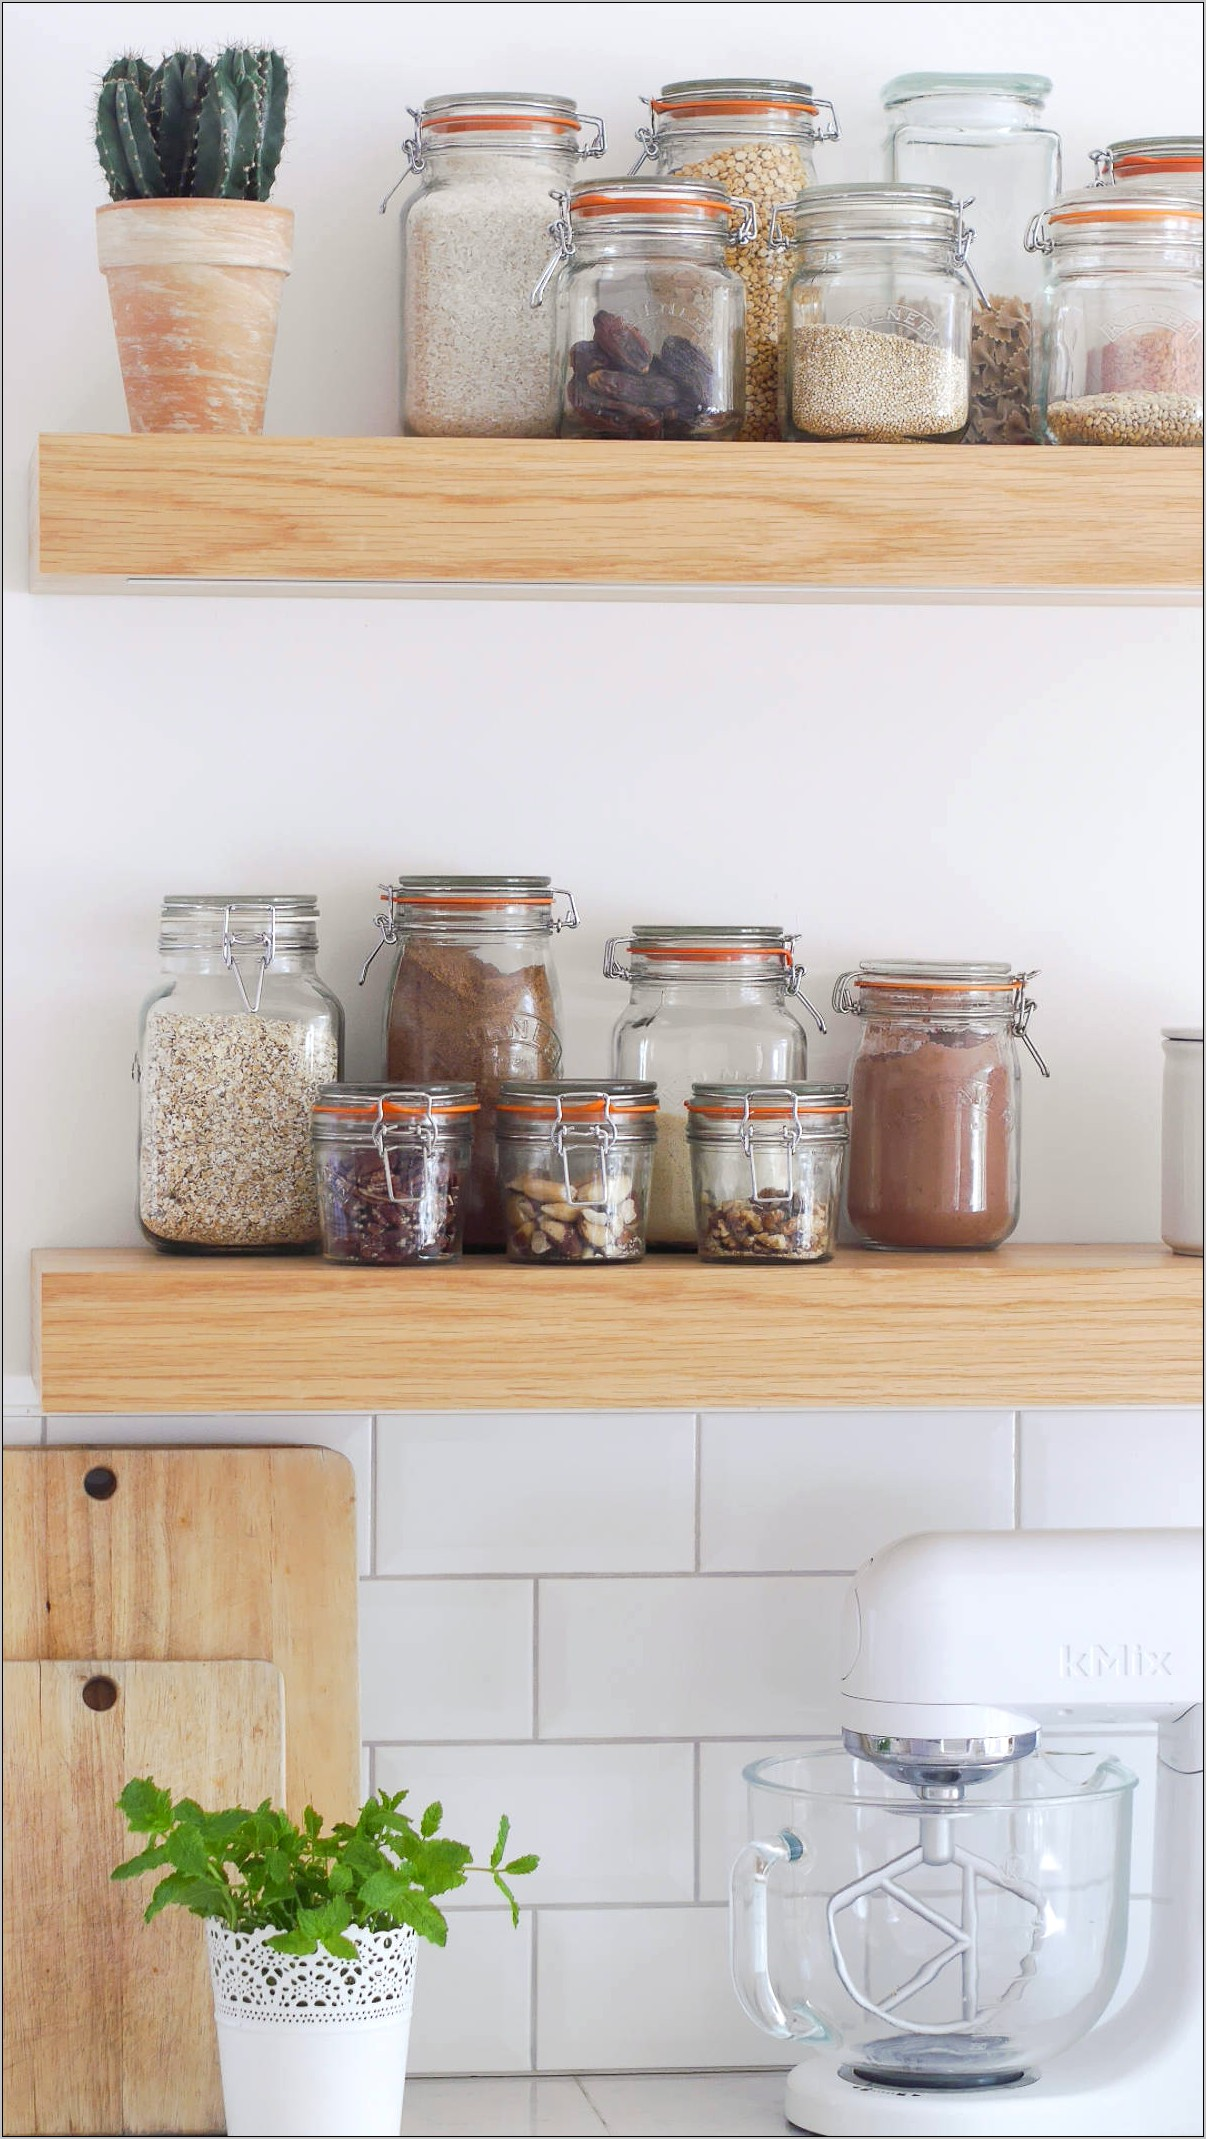 Decorative Mason Jars Kitchen Shelf